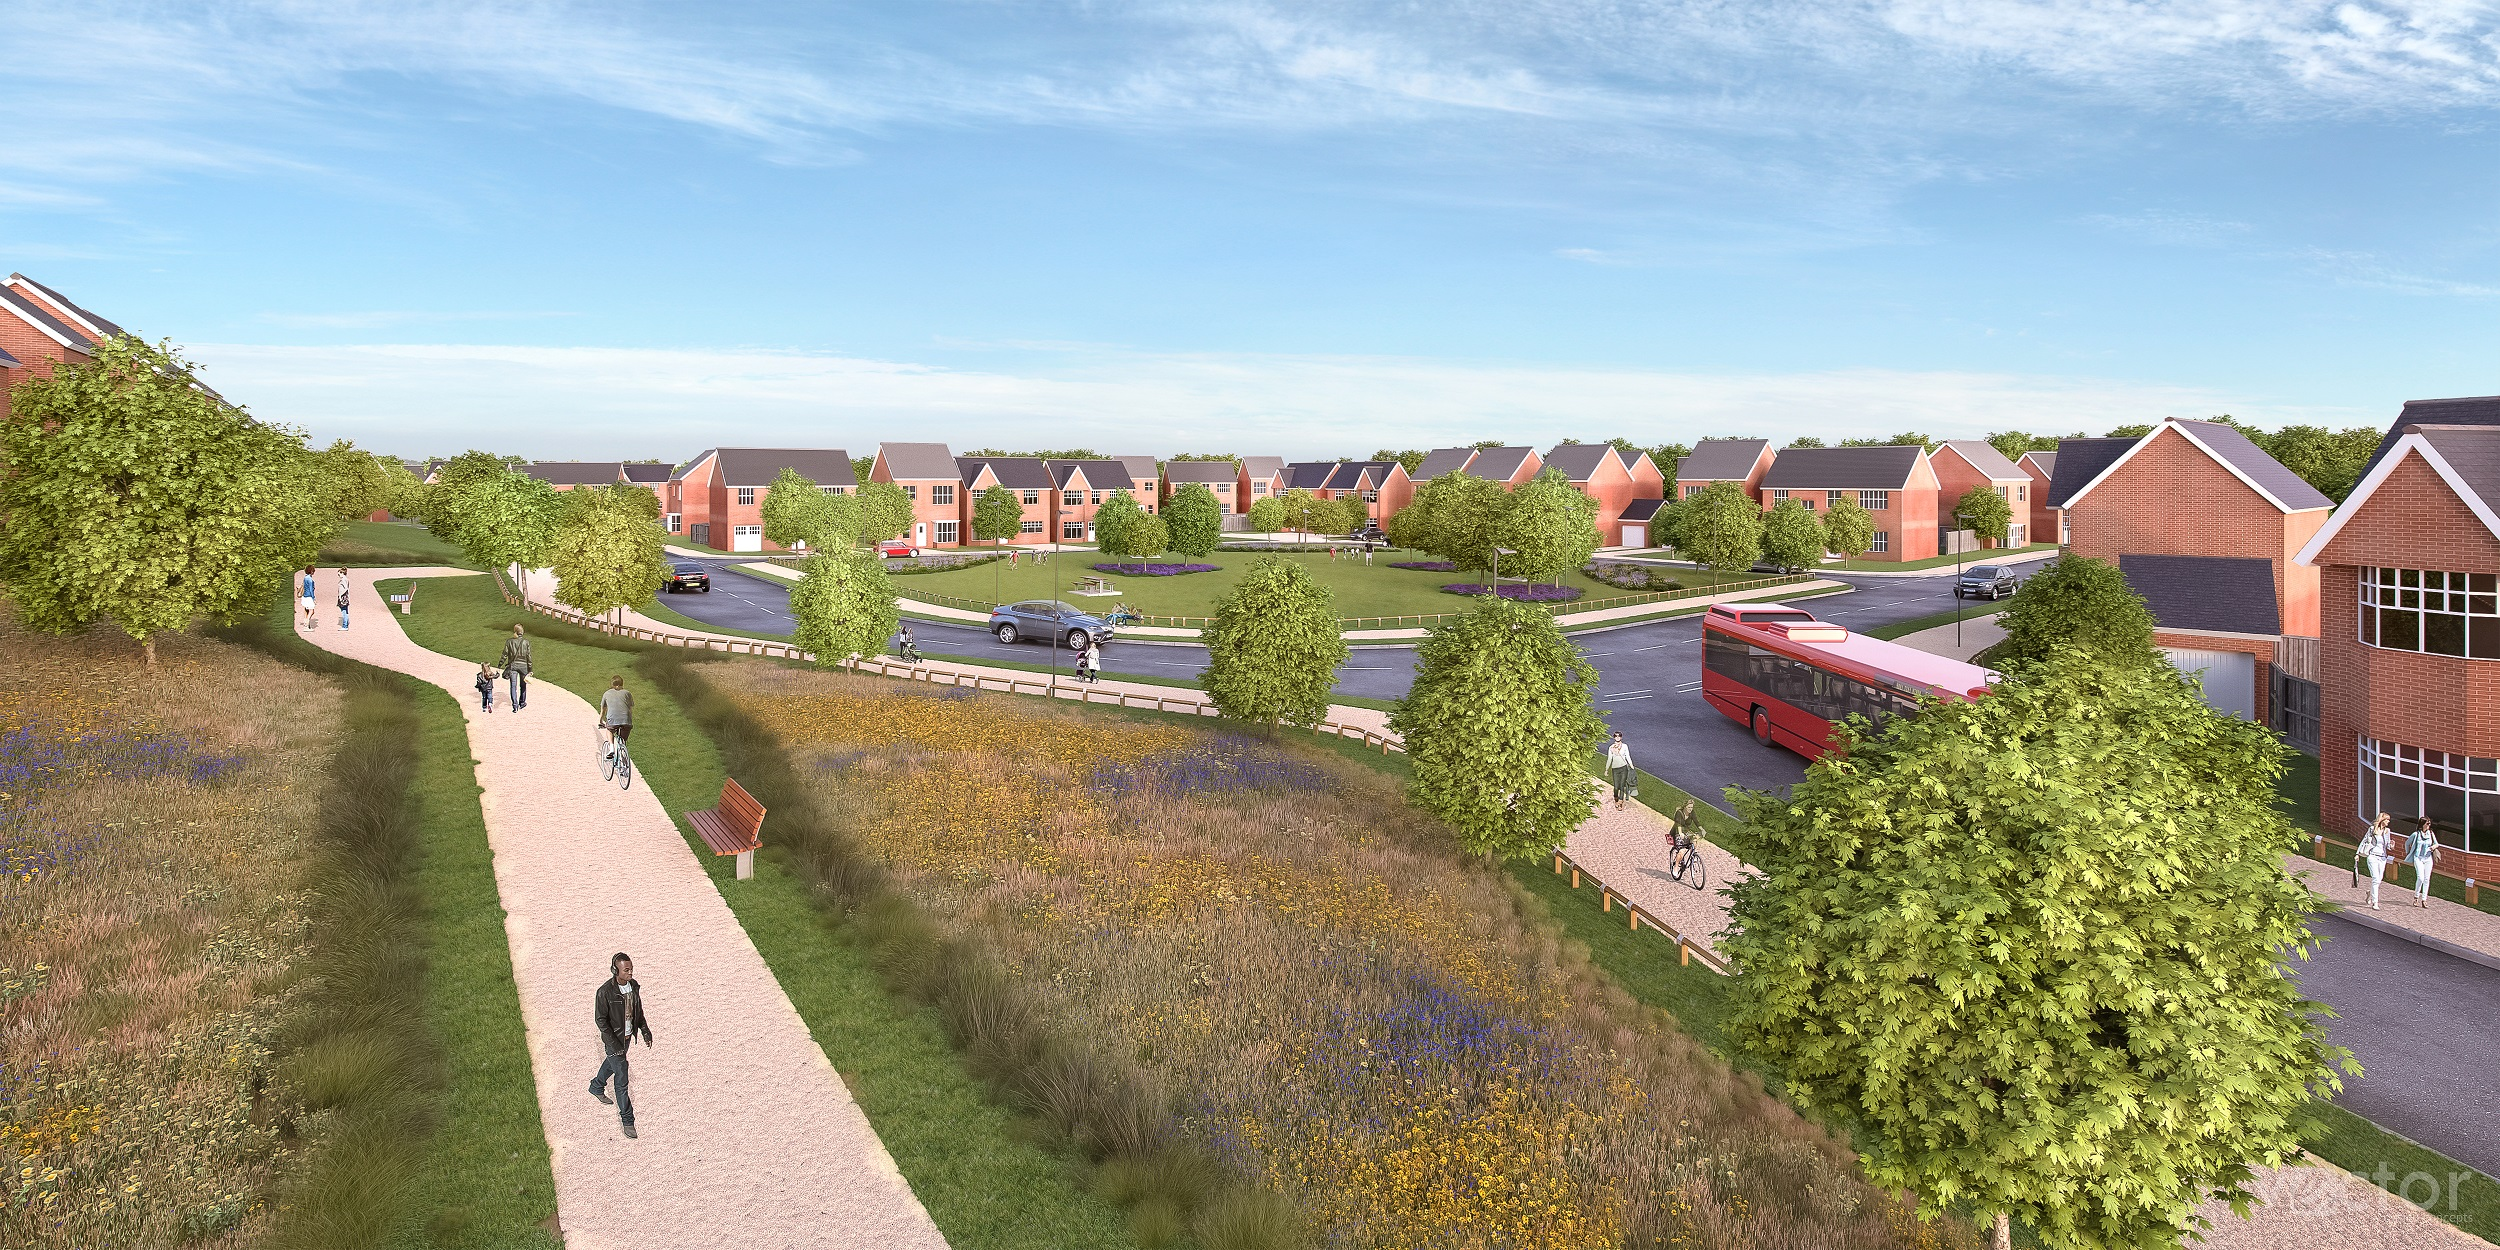 Work begins on one of the largest housing developments in the West Midlands